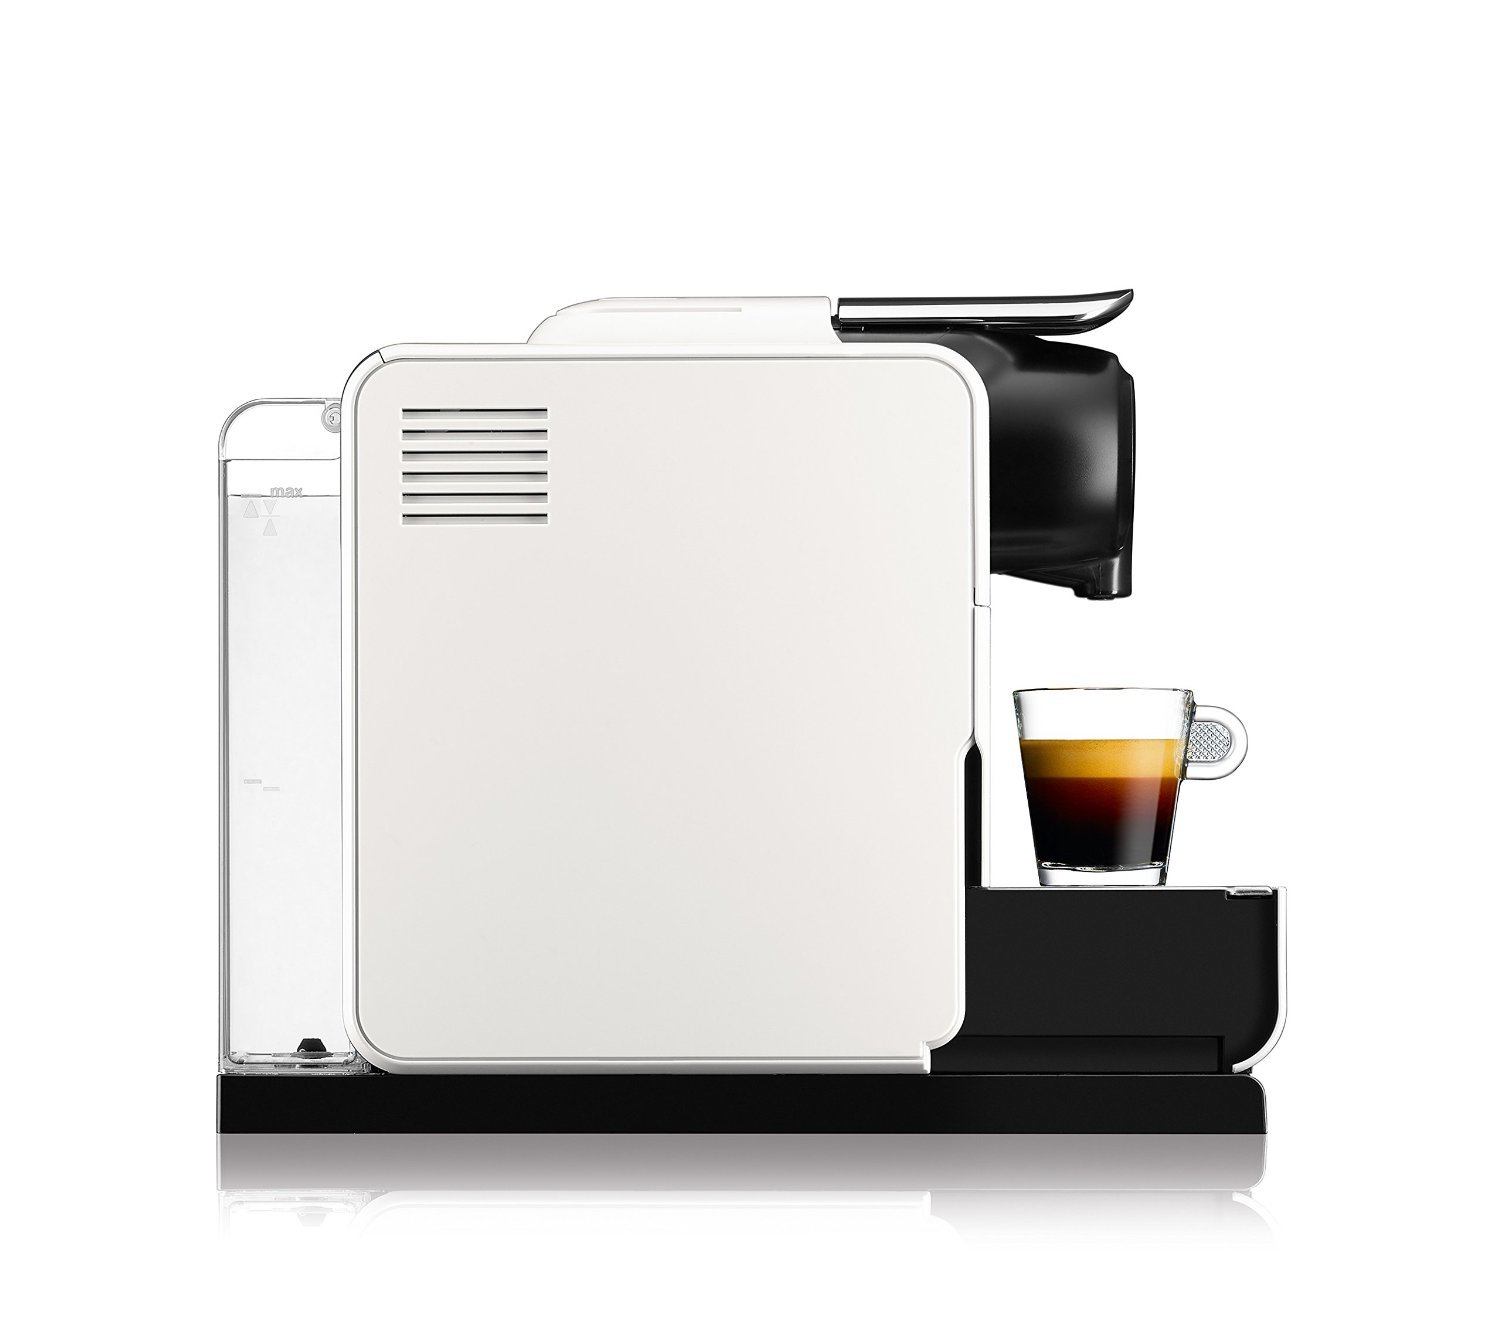 delonghi en550 w nespresso lattissima touch test kaffeekapselmaschine. Black Bedroom Furniture Sets. Home Design Ideas